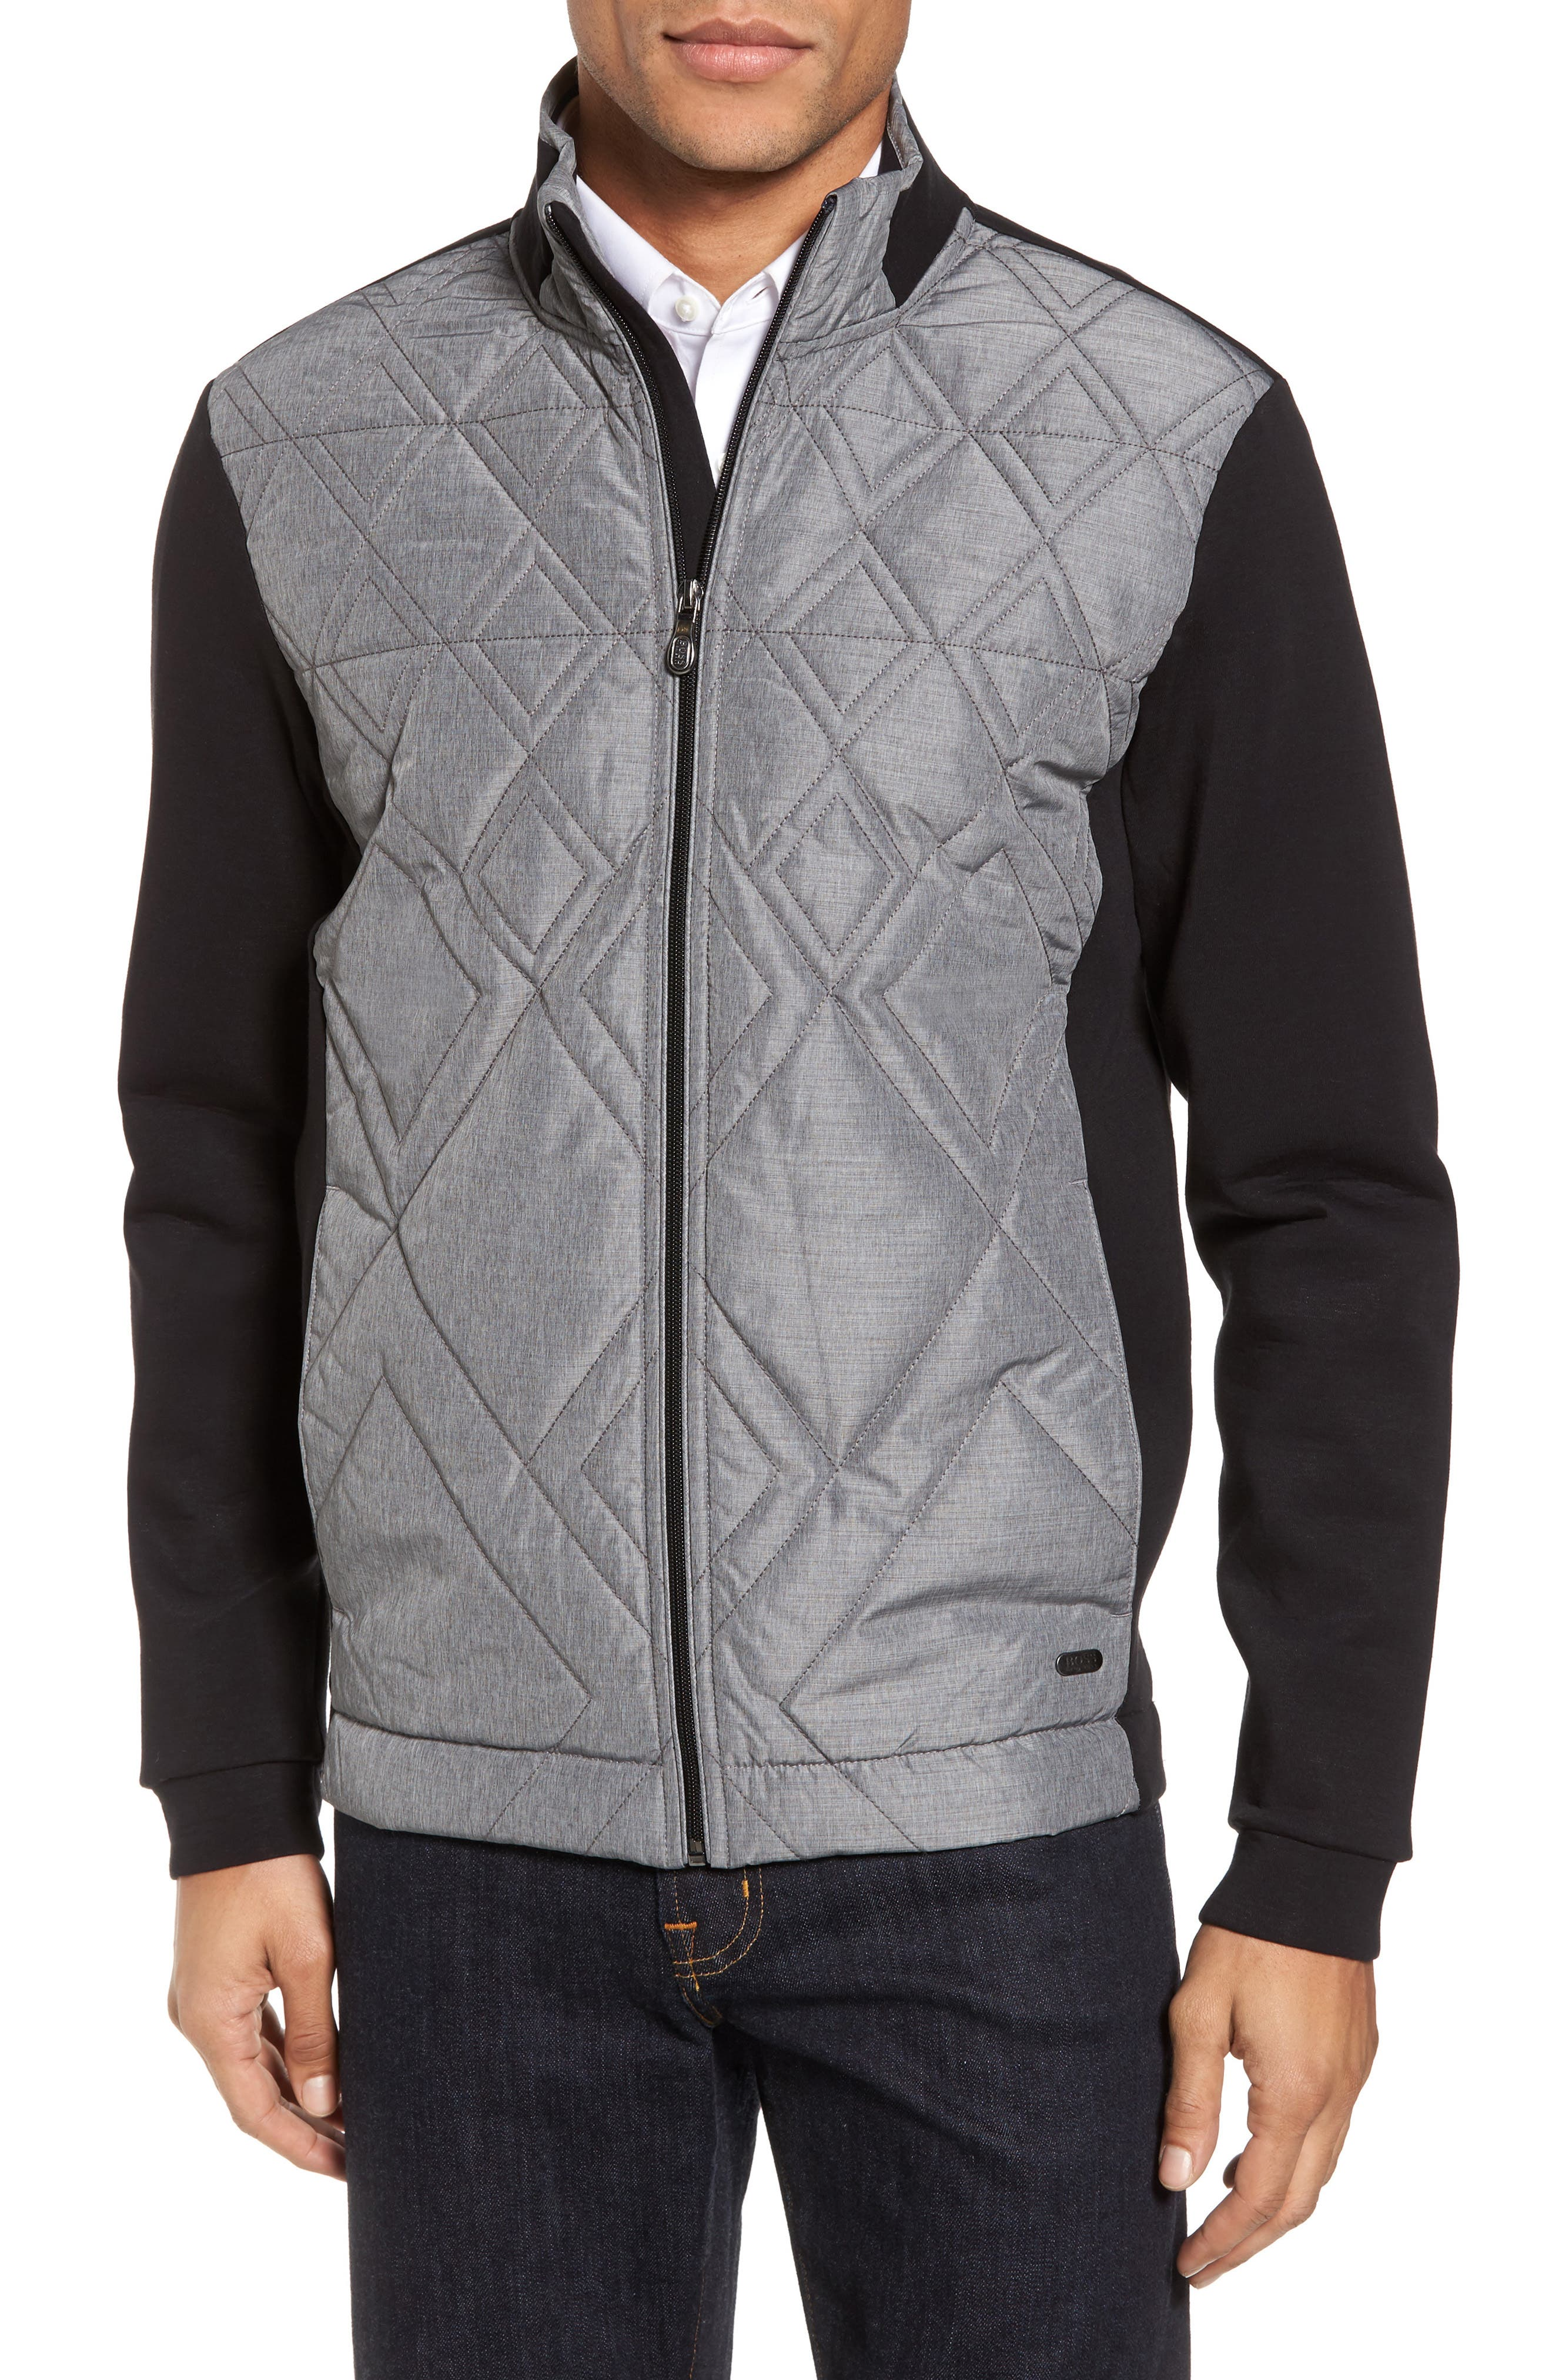 C-Pizzoli Quilted Jacket,                         Main,                         color, Black